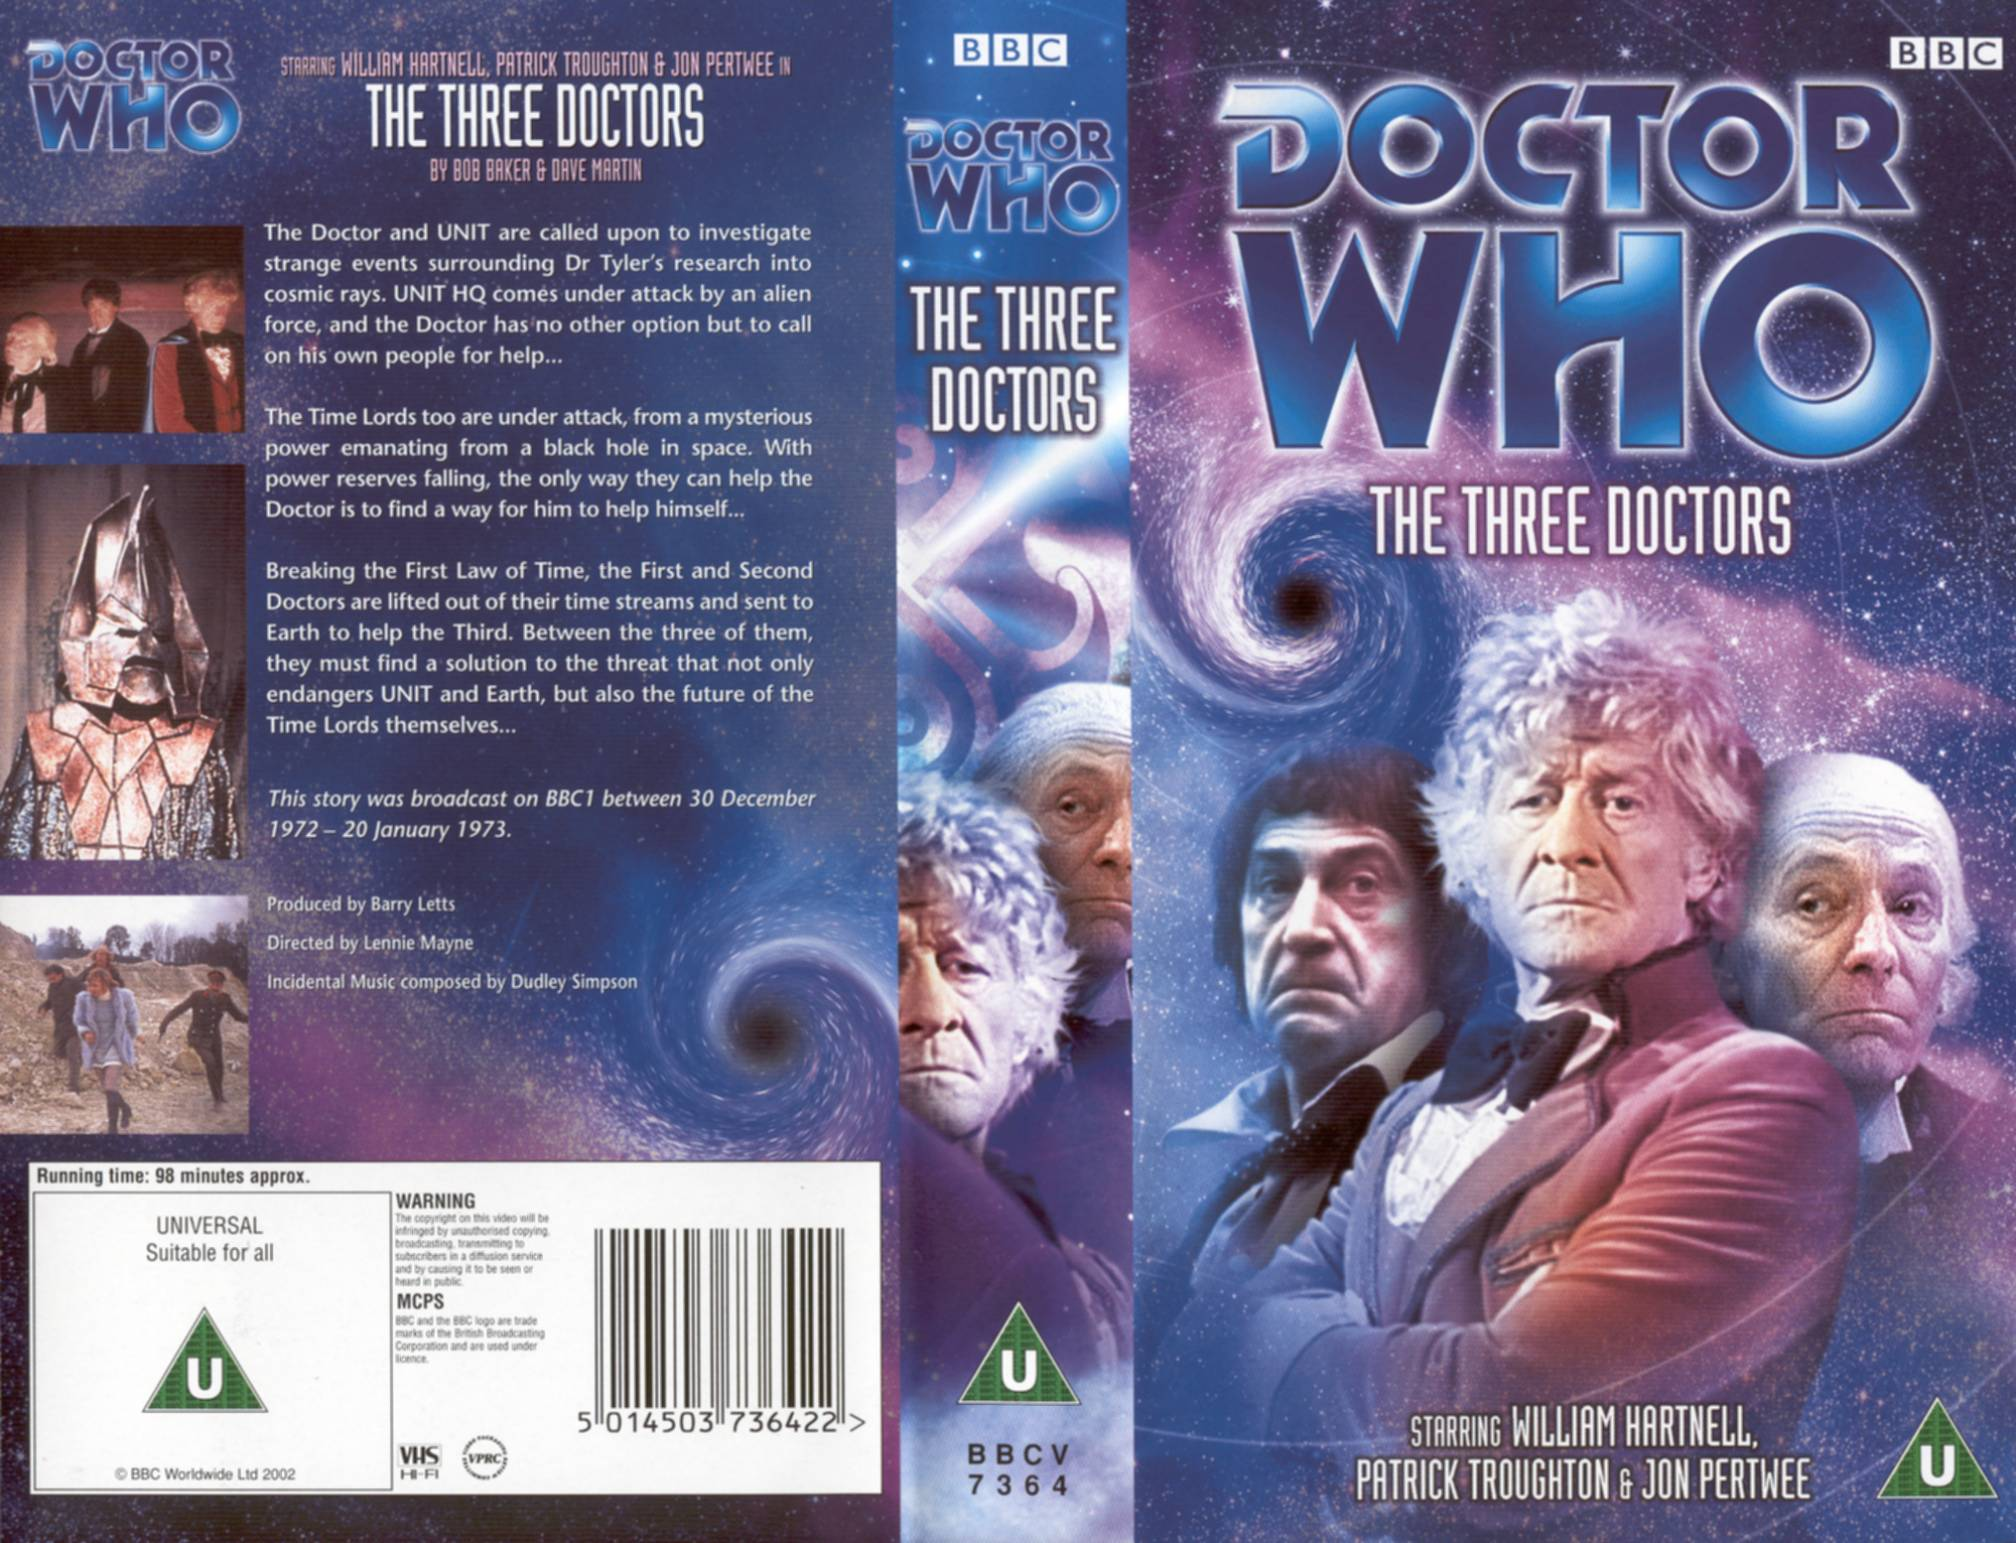 The Three Doctors VHS